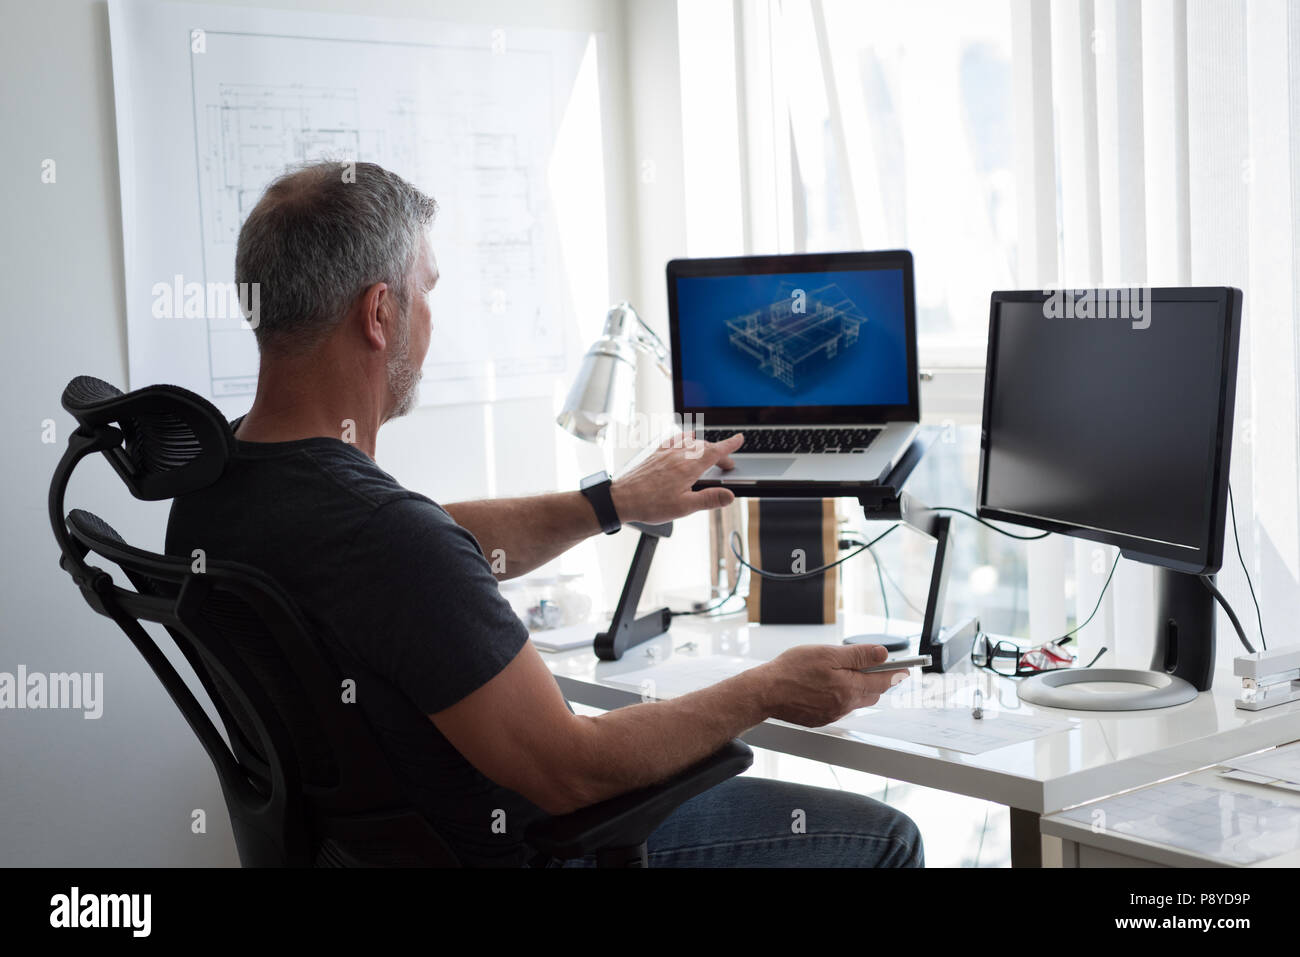 Man preparing architectural design on laptop and computer - Stock Image